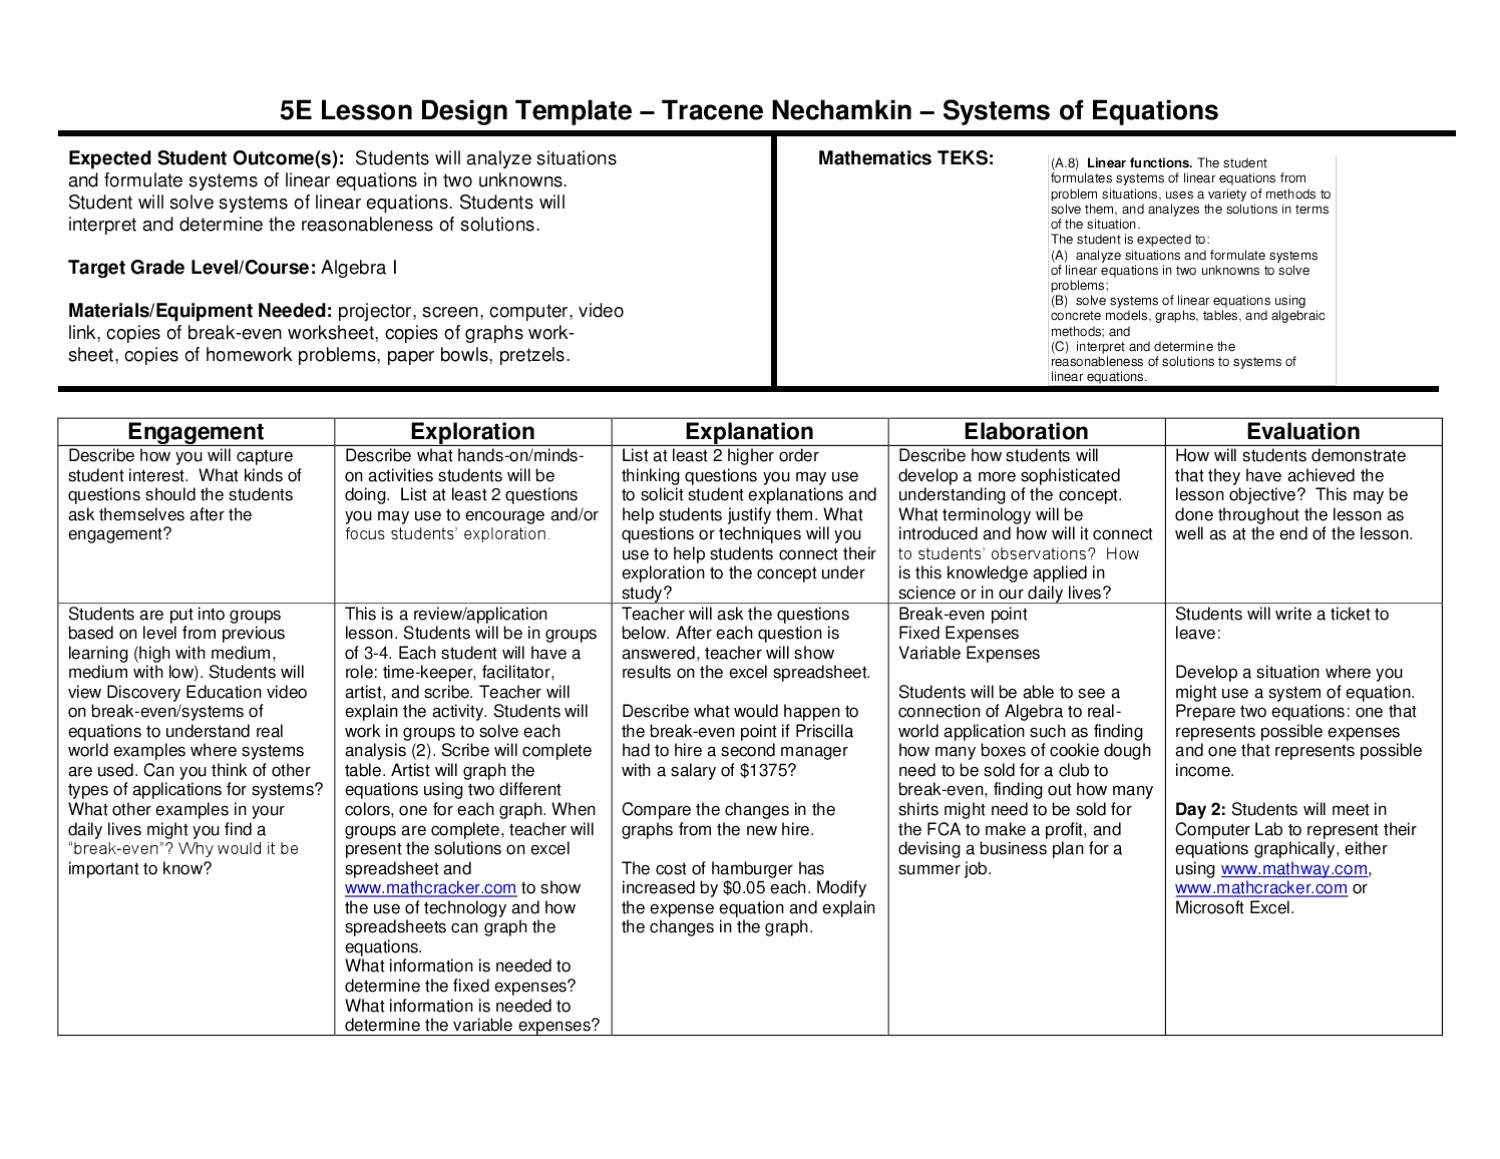 5e lesson plan systems of equations